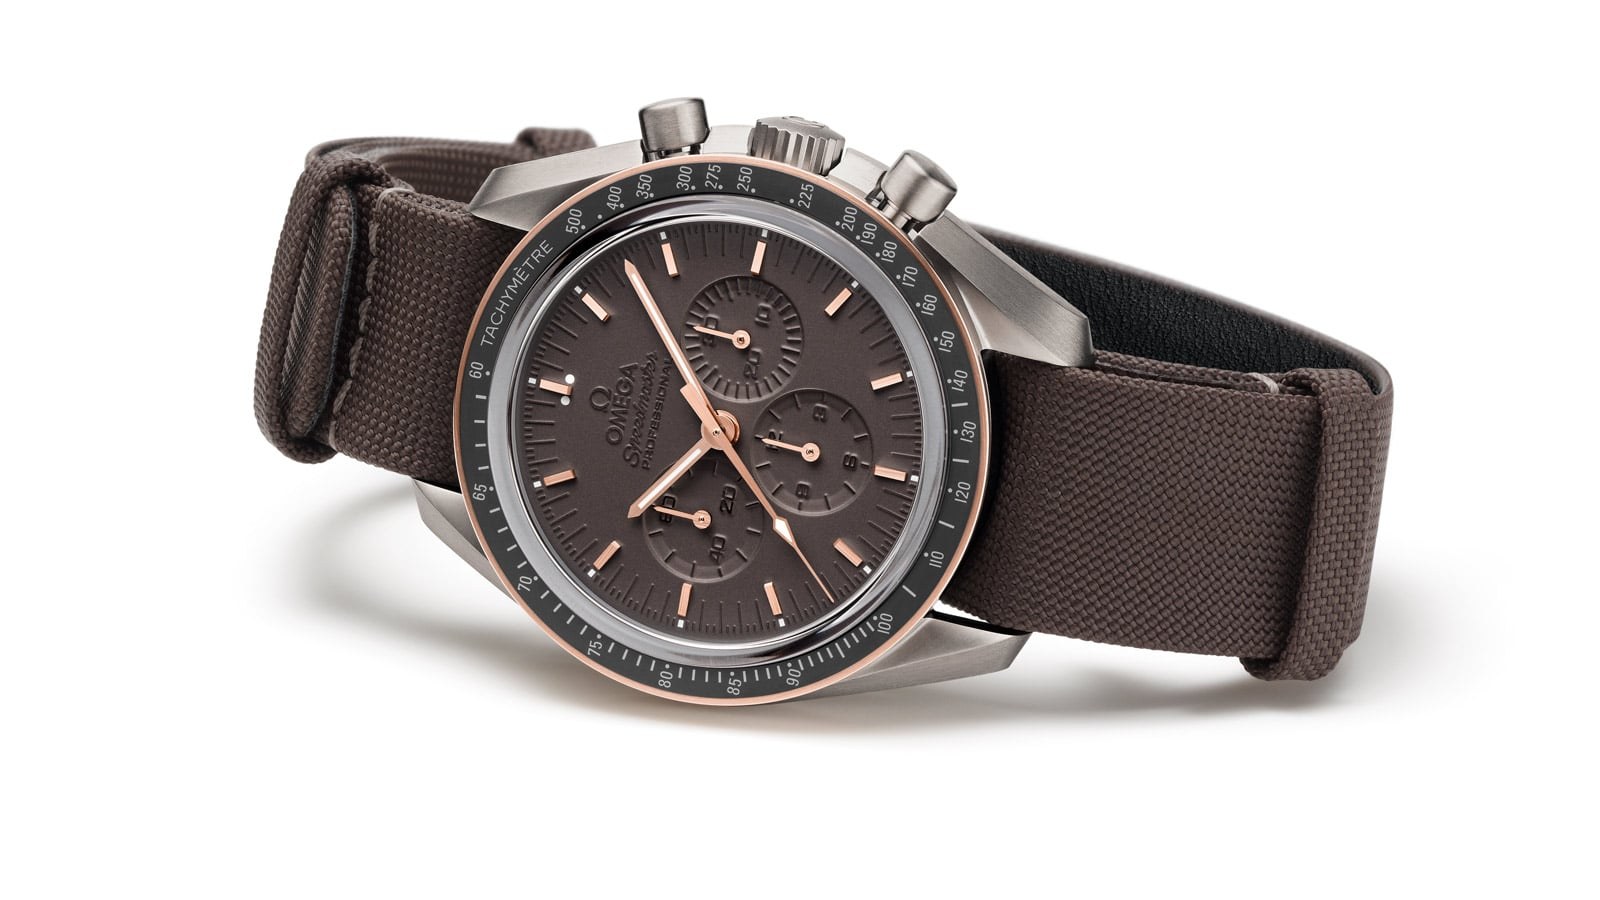 THE SPEEDMASTER APOLLO 11 45TH ANNIVERSARY LIMITED EDITION